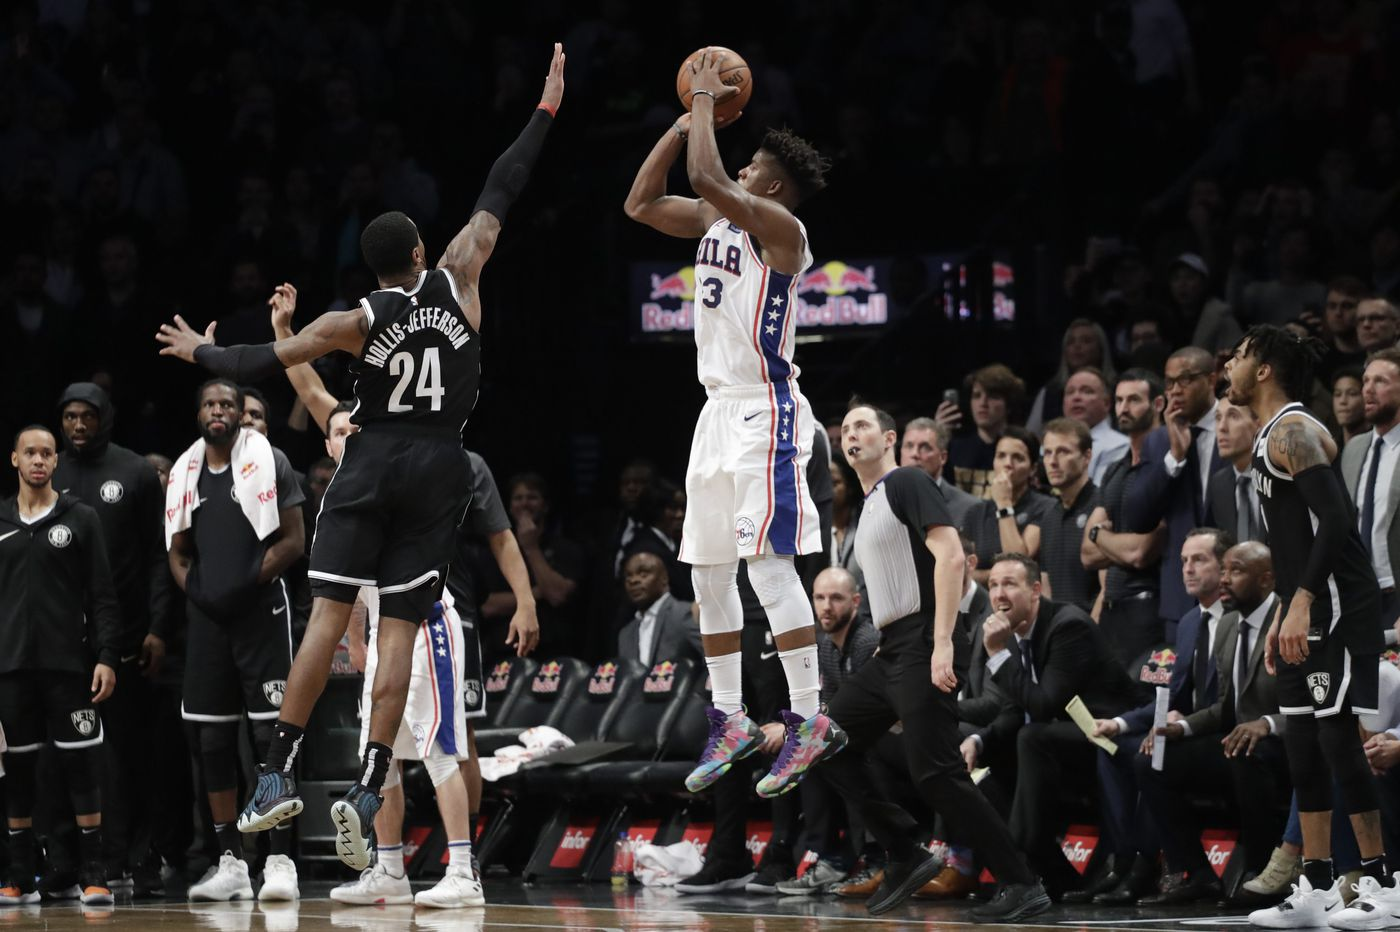 Jimmy Butler's last-second three-pointer lifts Sixers to win over Nets